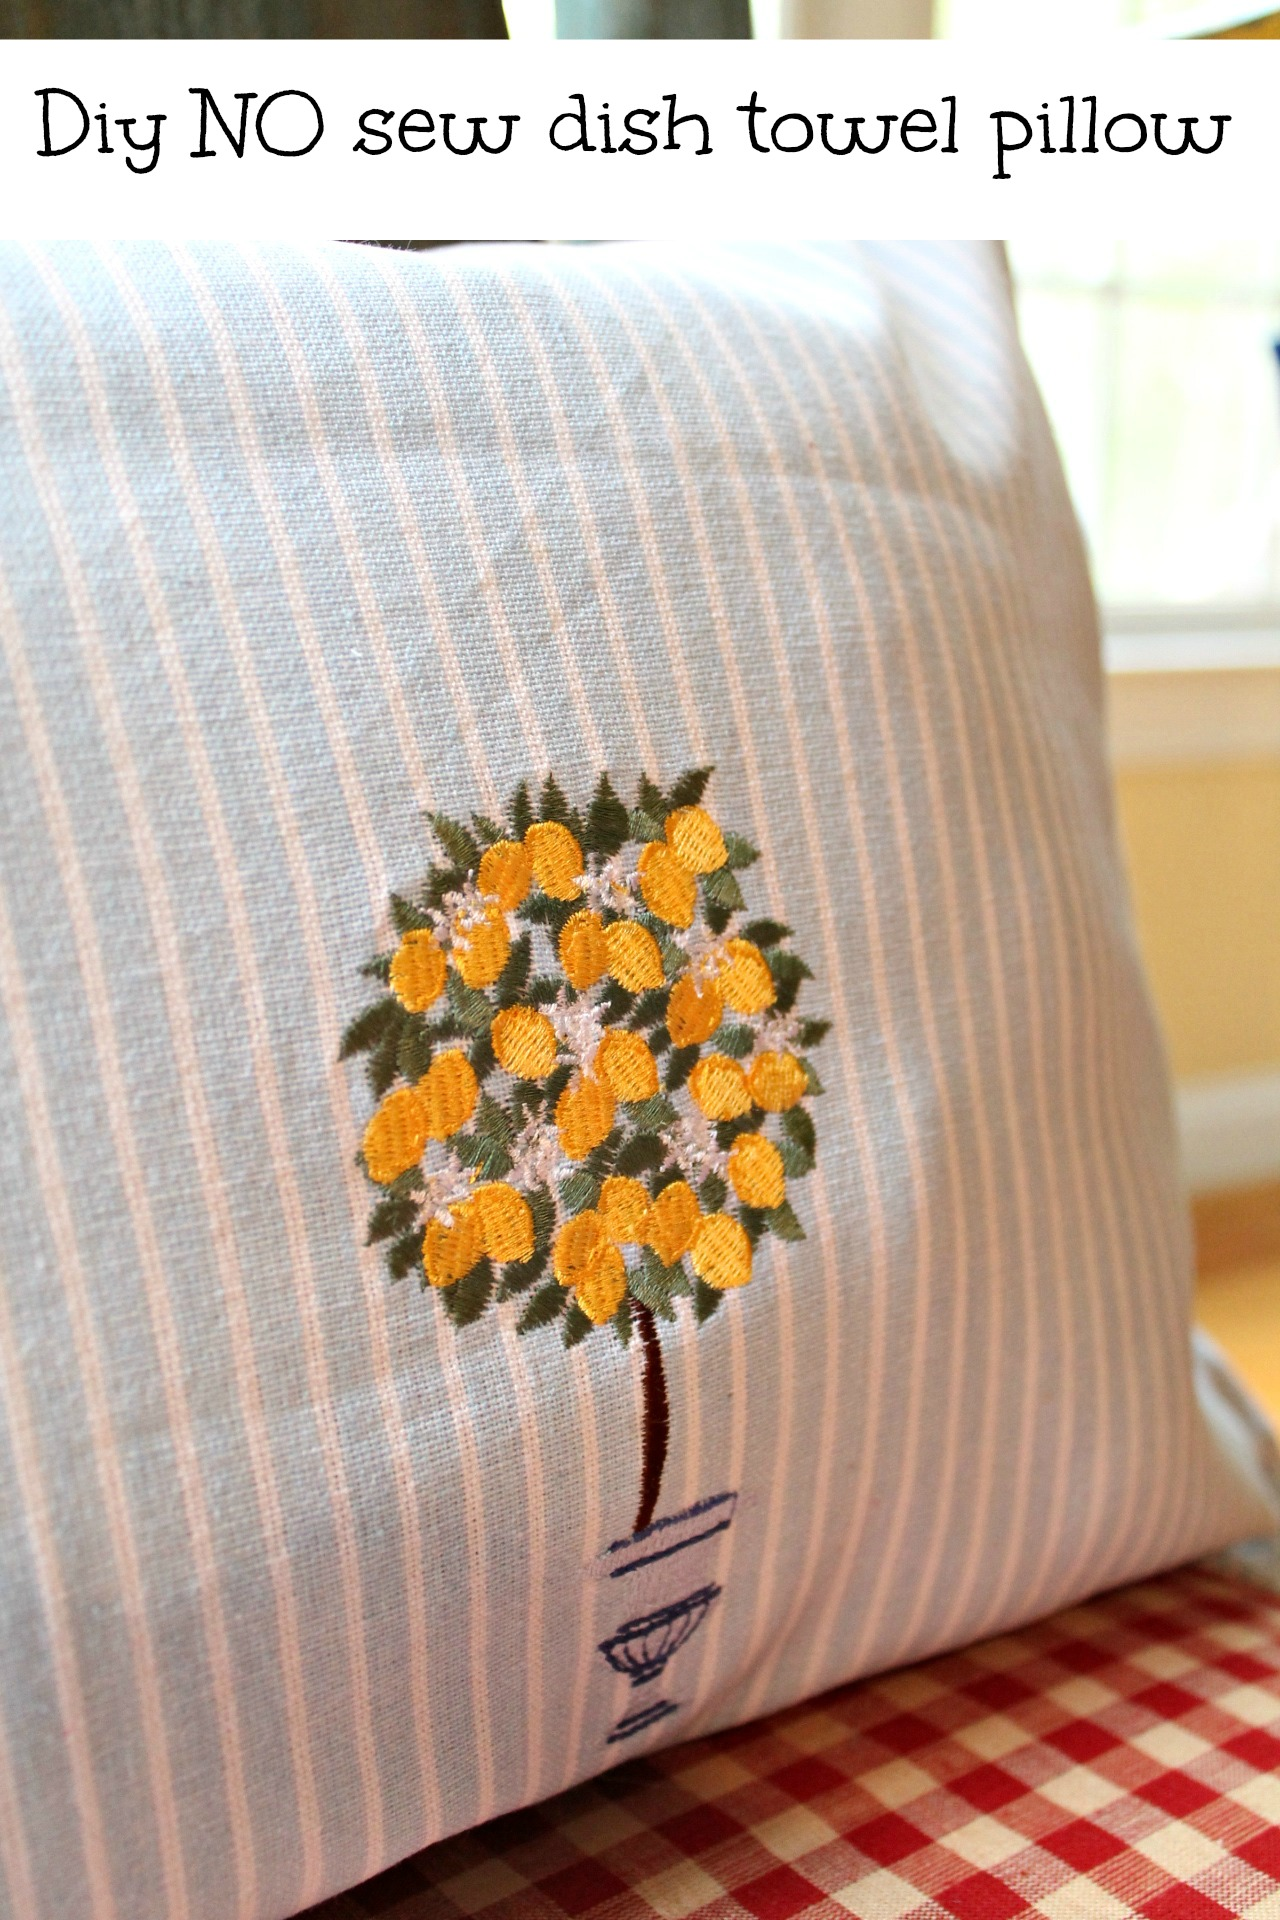 how to make a dish towel pillow